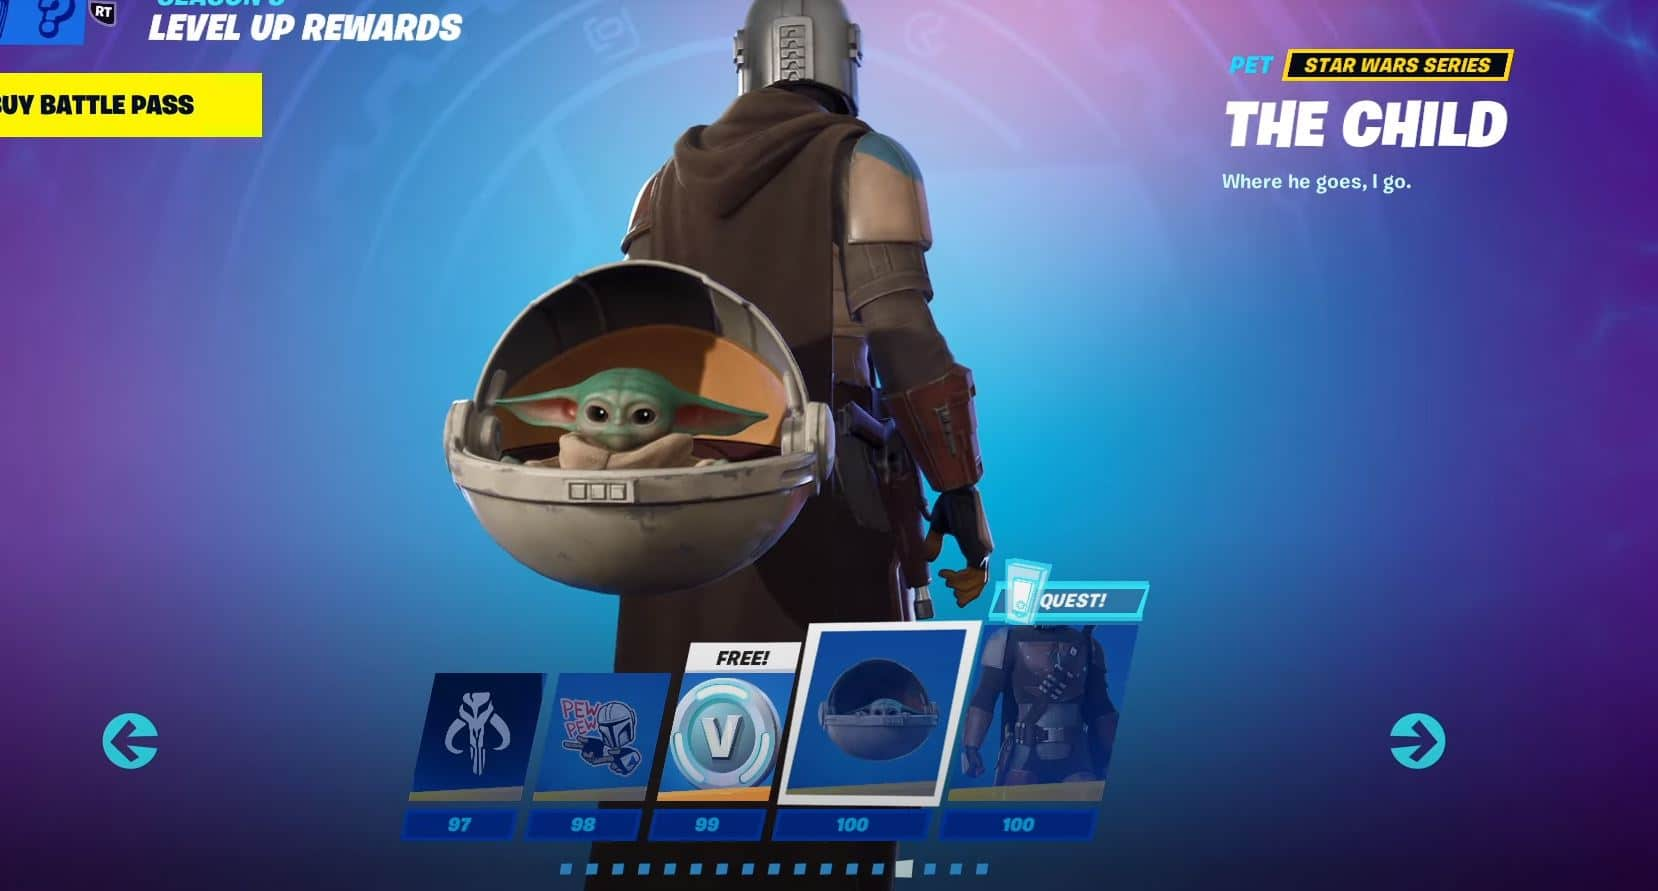 All Fortnite Chapter 2 Season 5 Season 15 Battle Pass Cosmetics Items Skins Pickaxes Gliders Emotes Wraps More Fortnite Insider Season 5 of chapter 2, also known as season 15 of battle royale, started on december 2nd, 2020 and will end on march 15th, 2021. all fortnite chapter 2 season 5